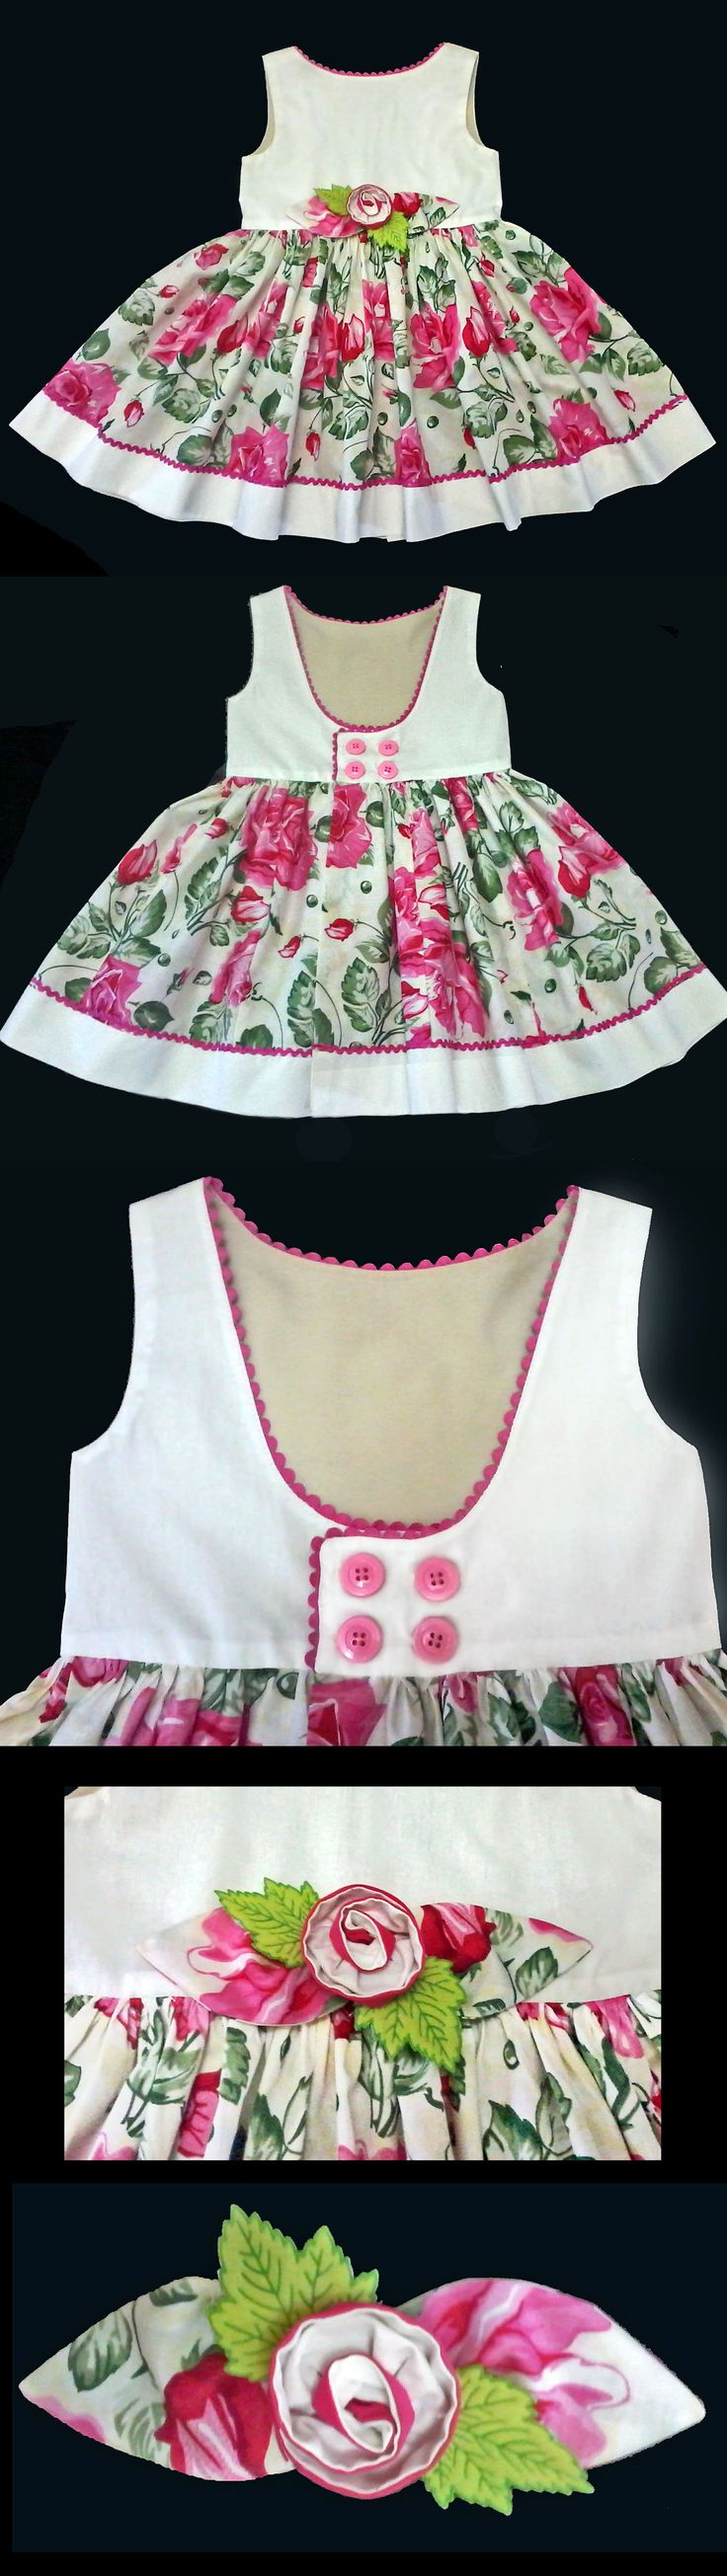 Vestido Infantil Floral - 4 anos . . . . . . . . .  Floral Pink Dress 4 years . . . . . . . . . .  Molde Grátis no Facebook - Free Pattern in Facebook. . . . . . . . . https://www.facebook.com/groups/1594730384185604/